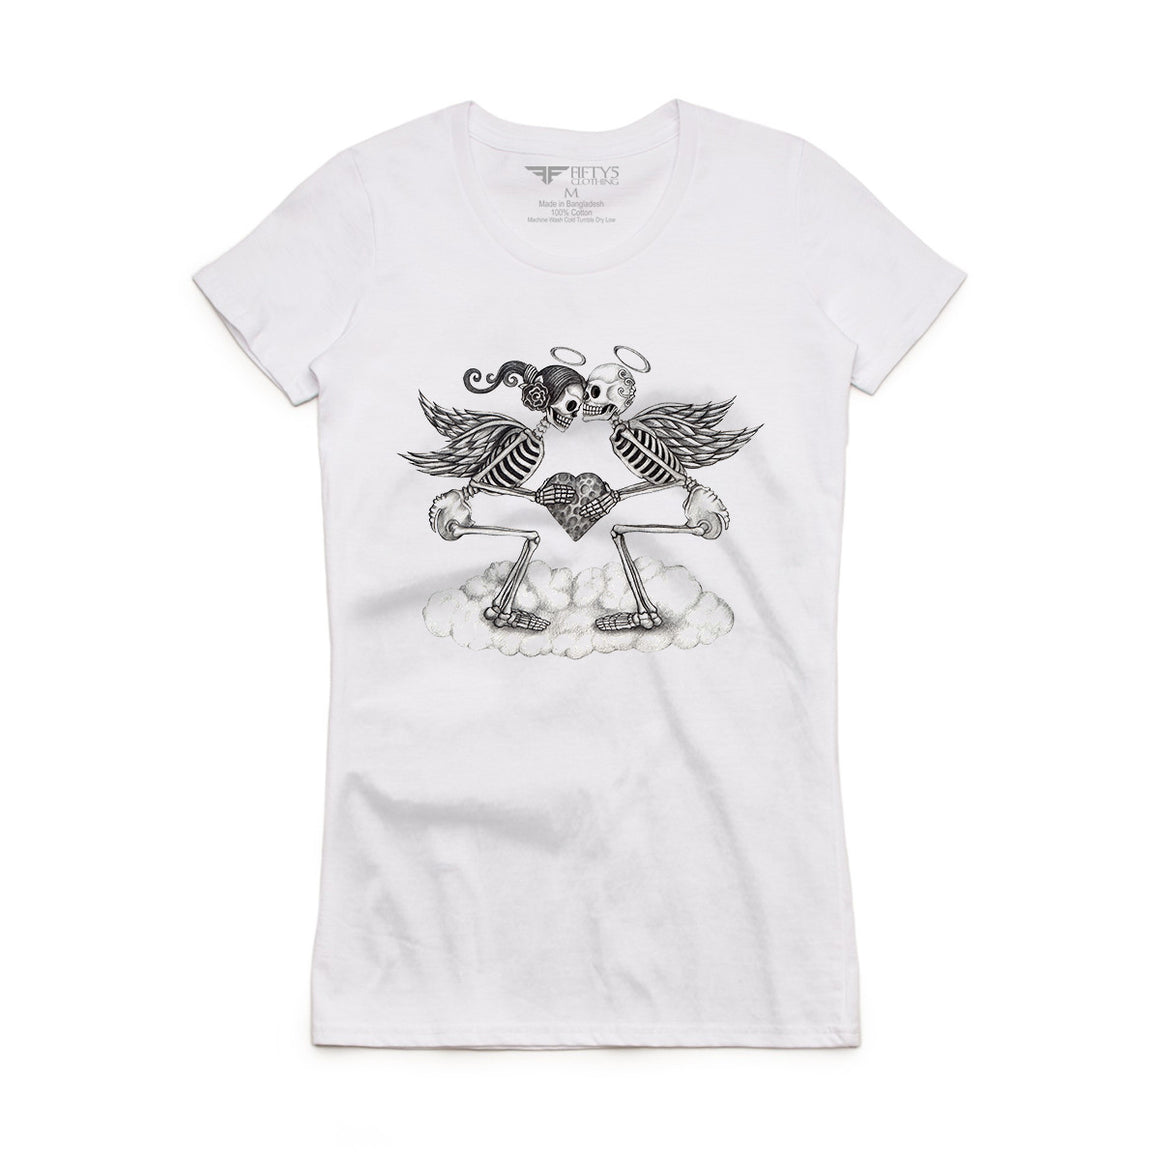 Fifty5 Clothing Cupids Women's T-Shirt